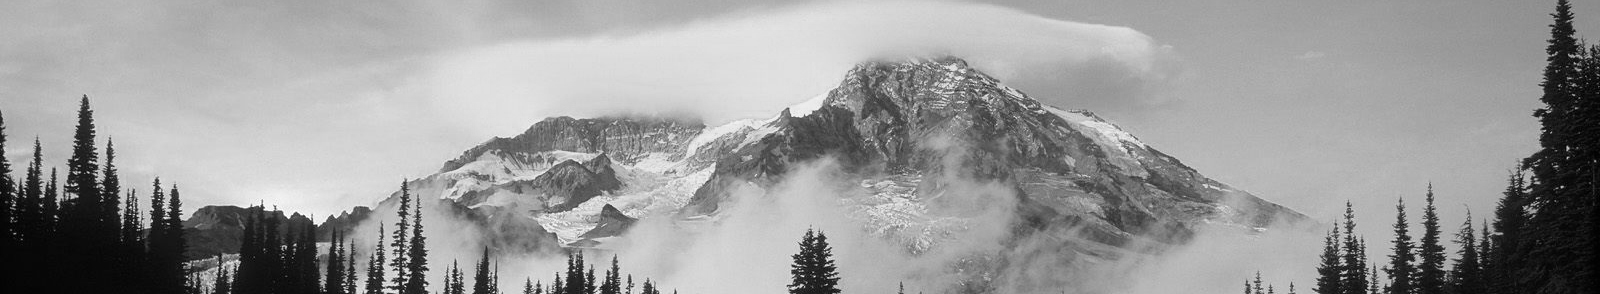 mount-rainier-cropped-wide-black-and-white